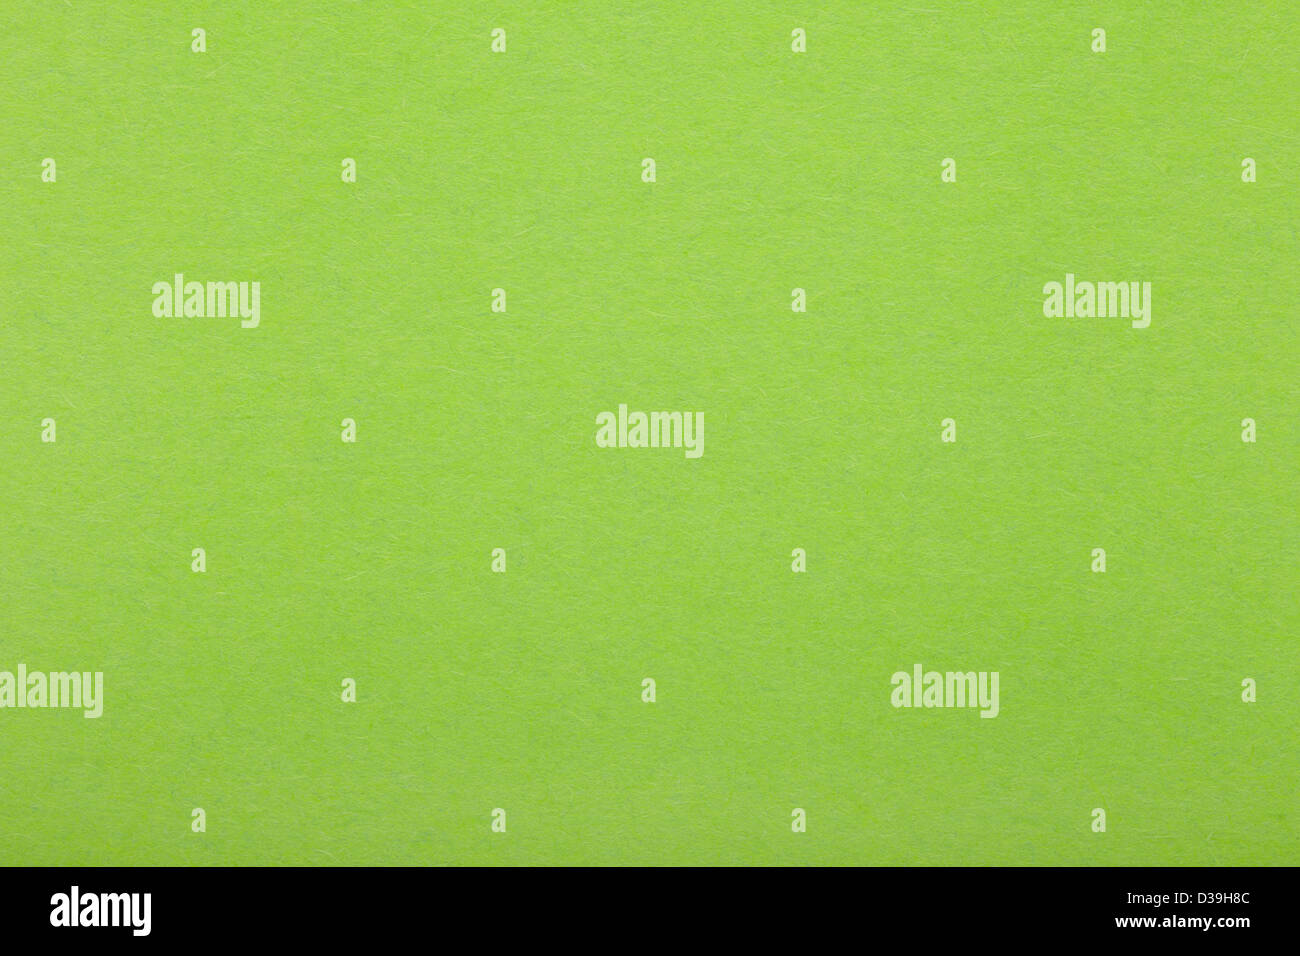 Green paper texture background - Stock Image